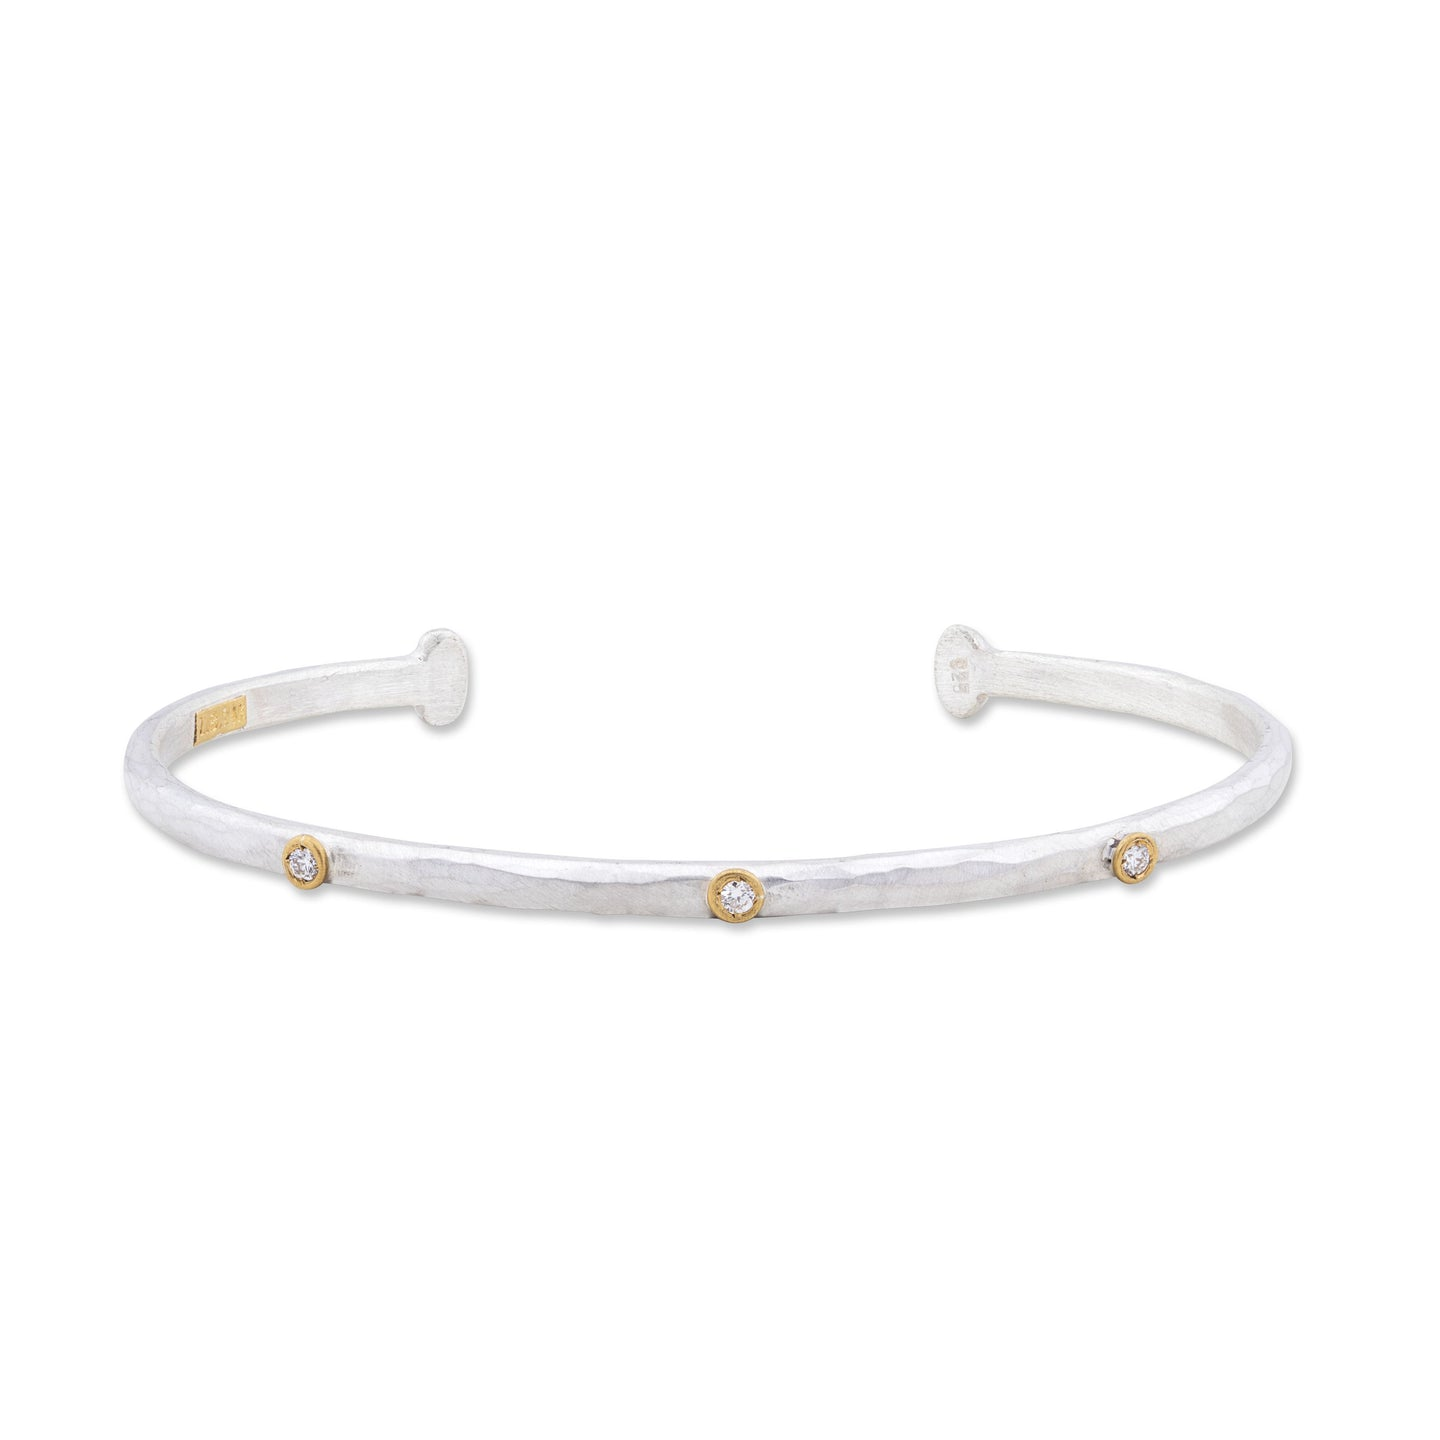 Lika Behar Thin Cuff with Diamonds